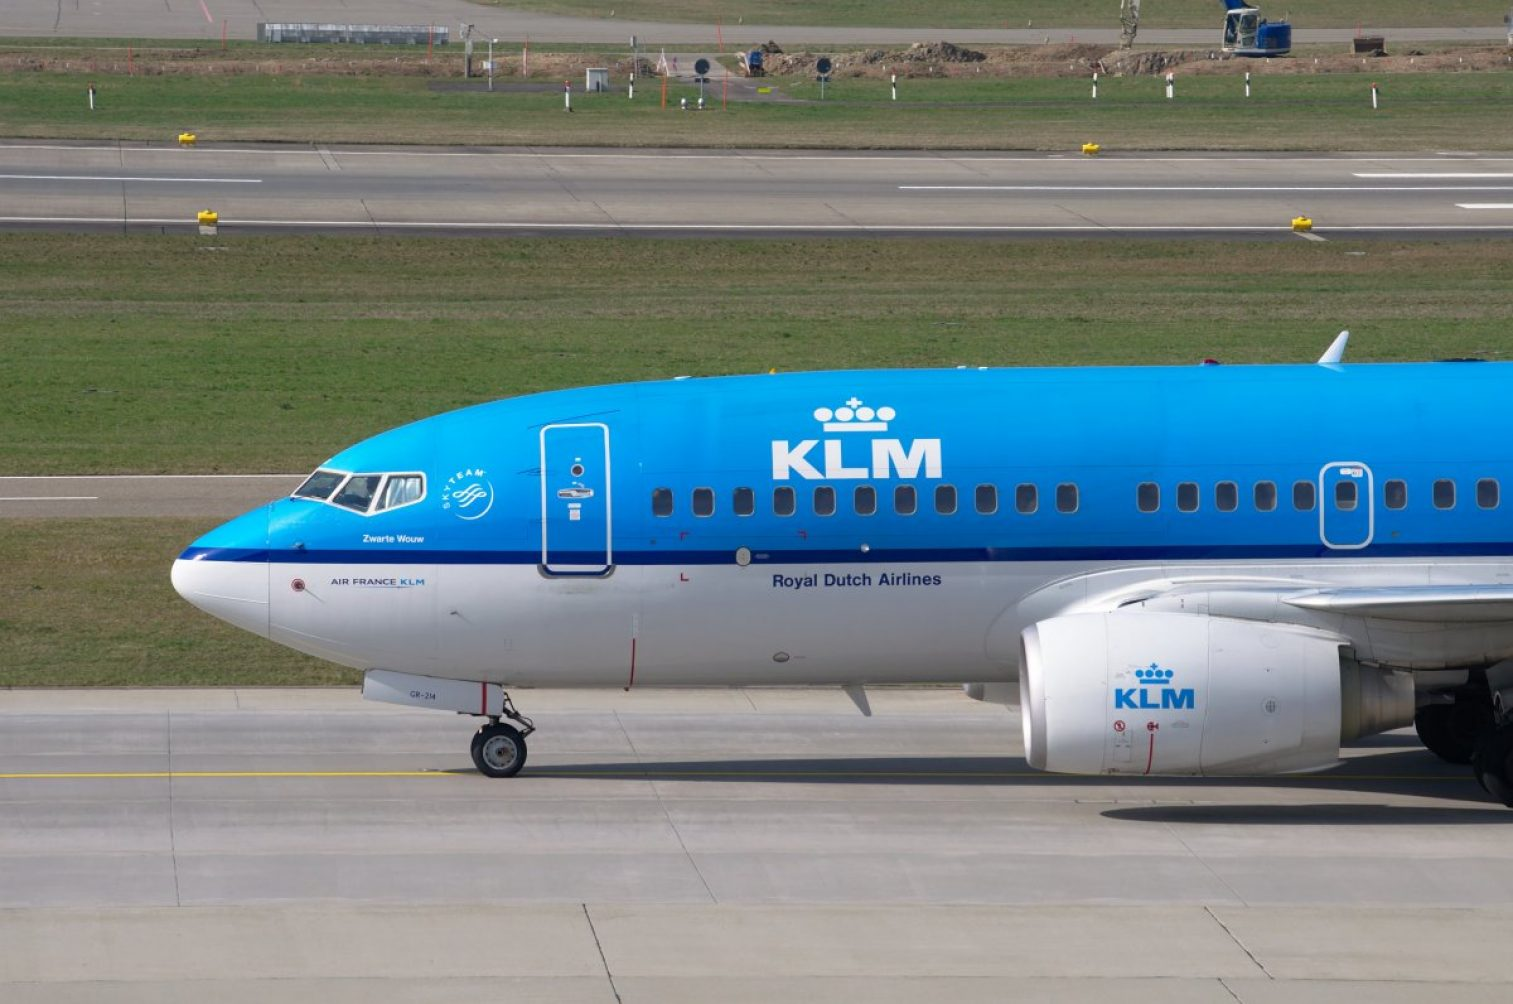 aircraft, klm, boeing 737